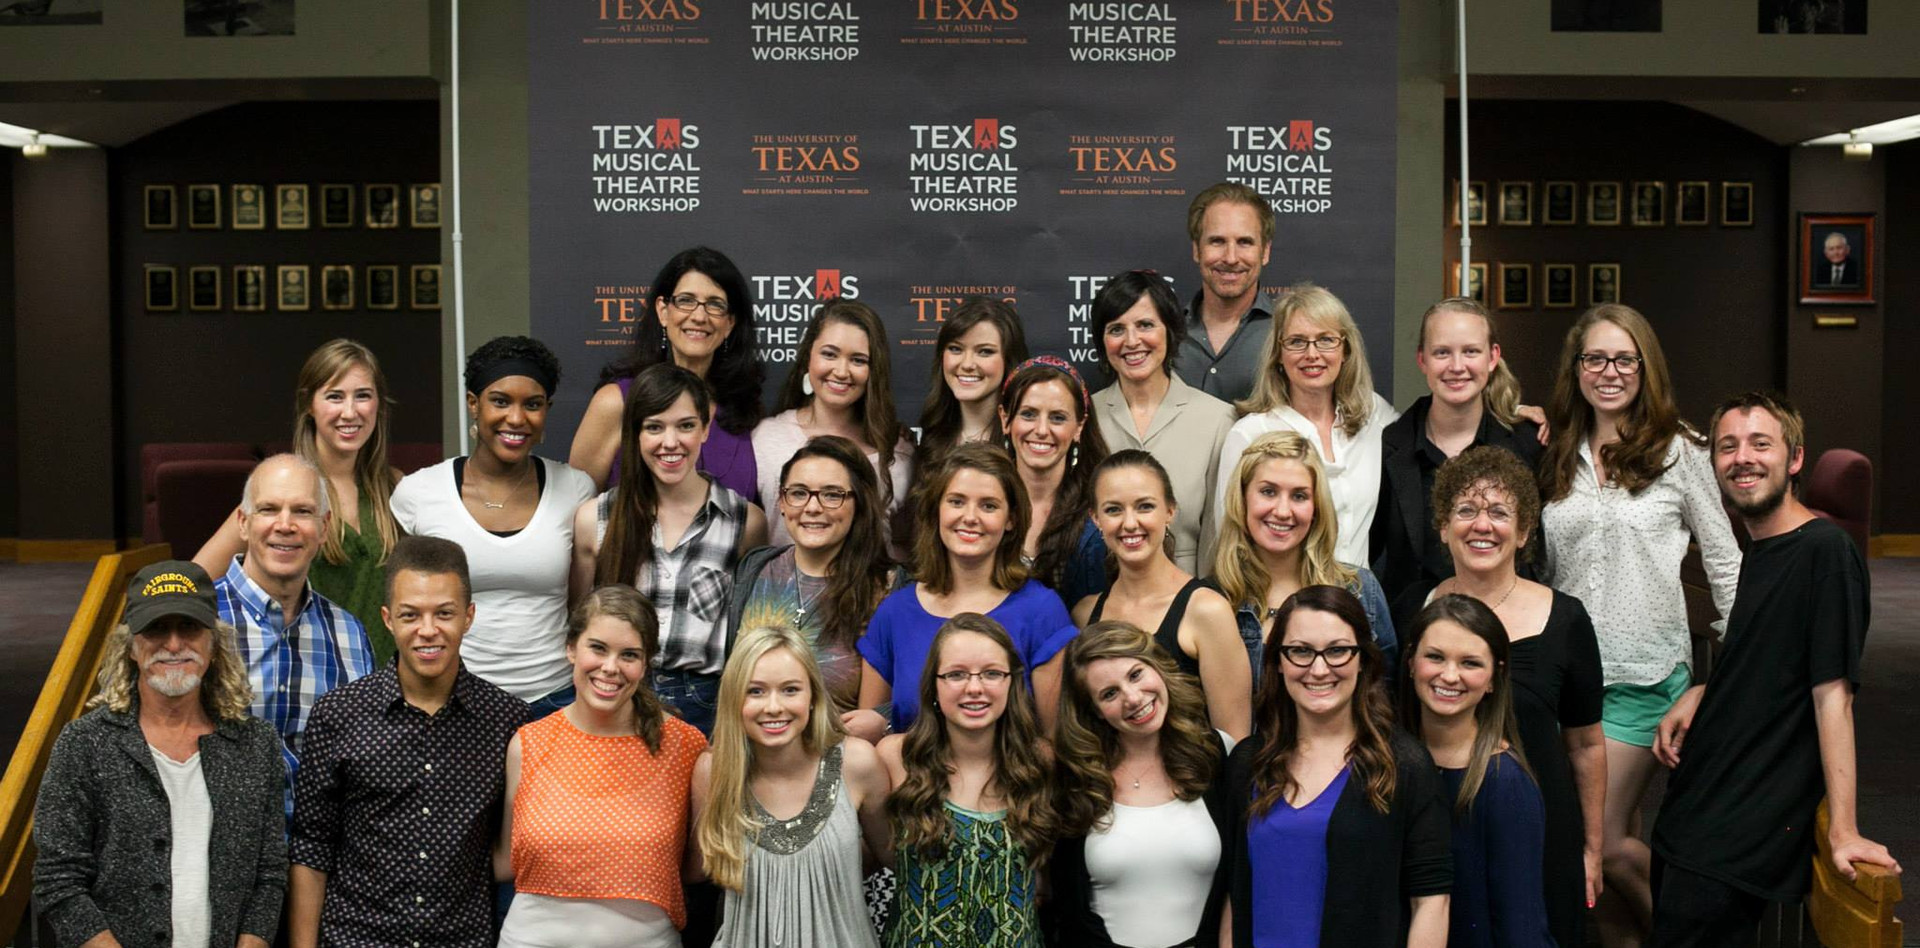 PRINCESSES (A New Musical) at Texas Musical Theatre Workshop, Austin